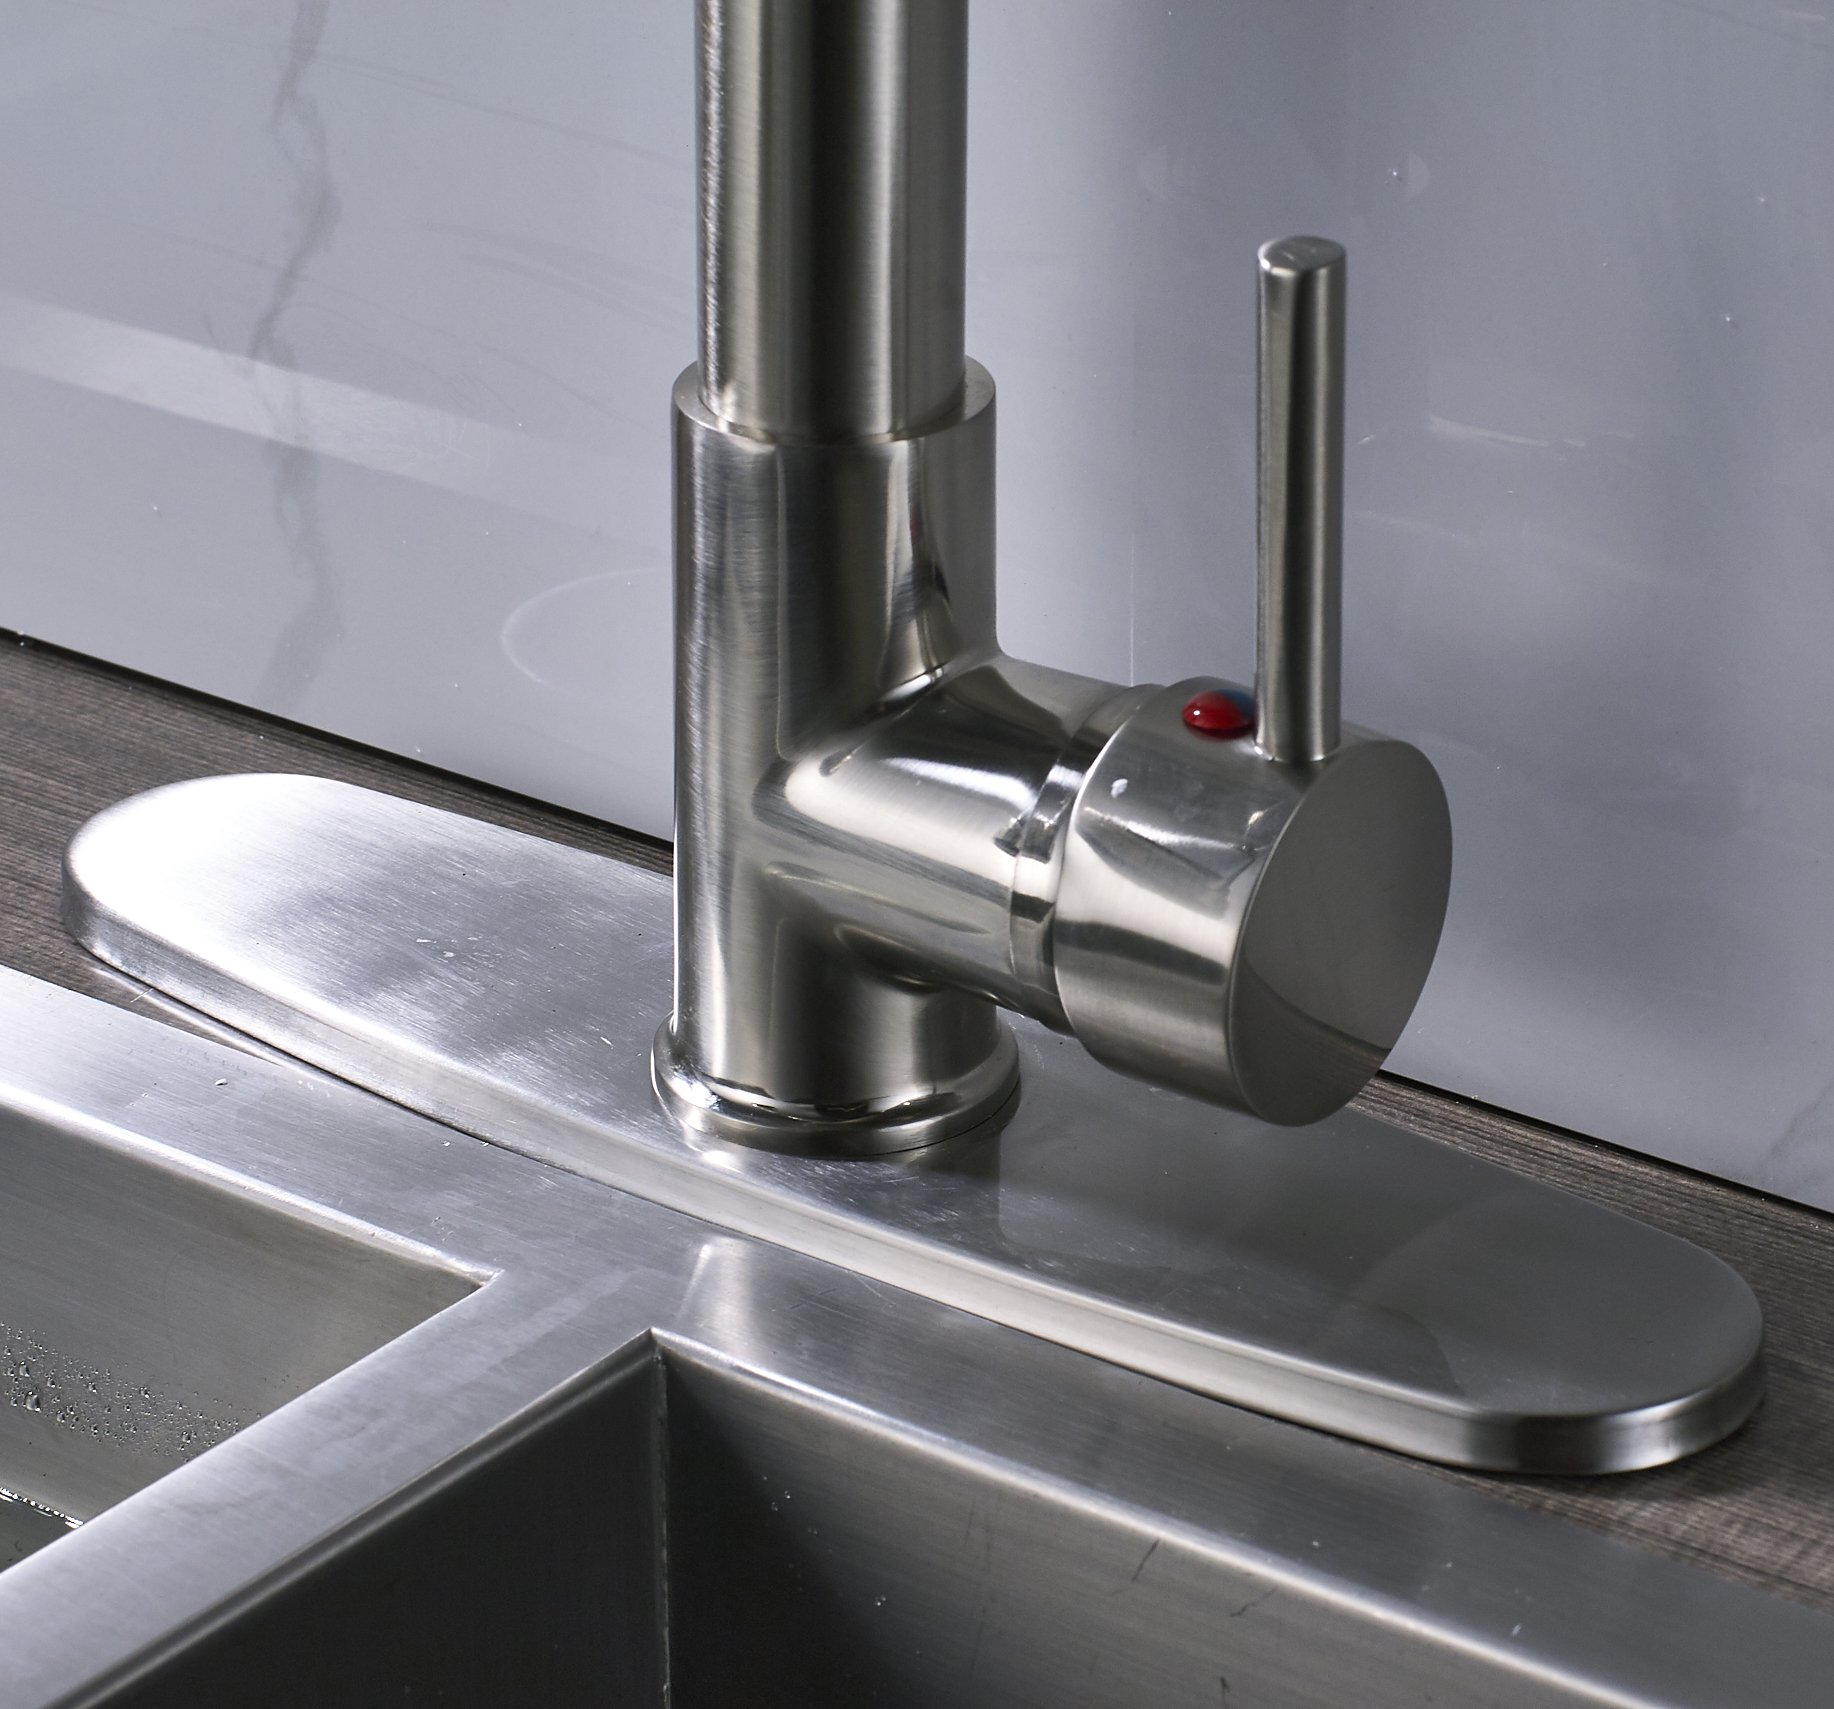 Rozin LED Light Sprayer Kitchen Sink Faucet with 8-inch Cover Plate Brushed Nickel by Rozin (Image #4)